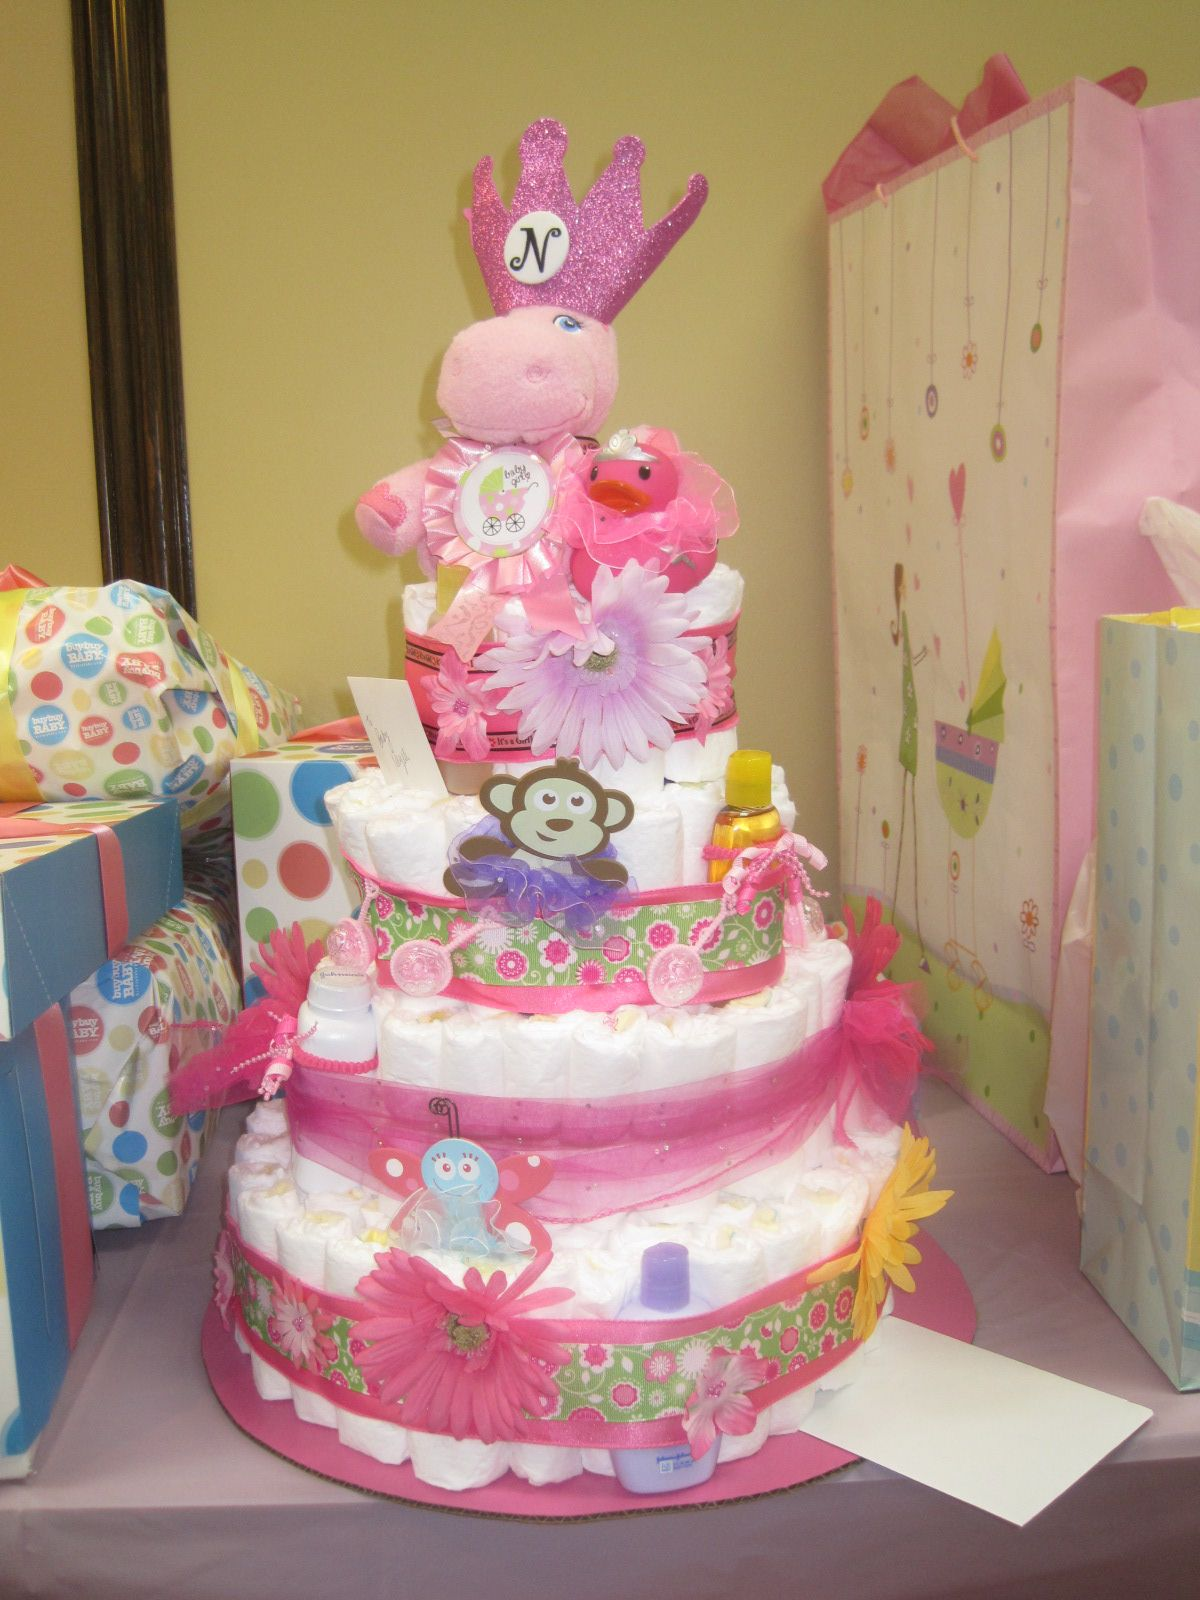 Pamper Party Cake Images : Living Room Decorating Ideas: Baby Shower Pamper Cake Ideas